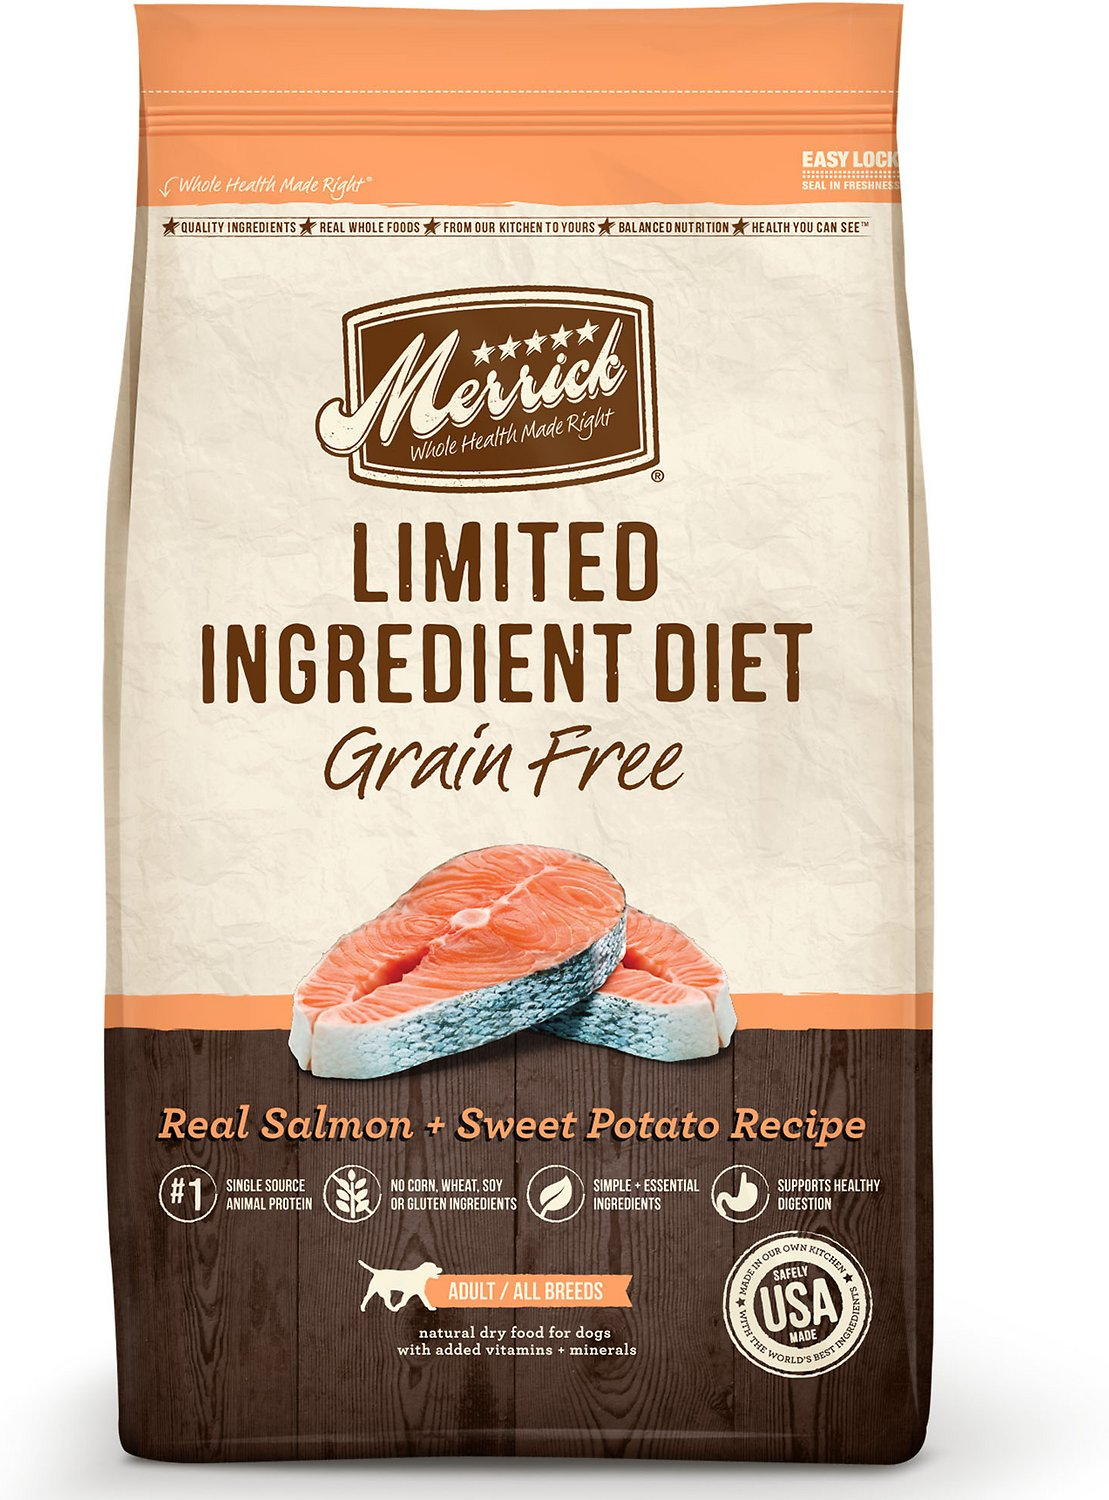 Merrick Limited Ingredient Diet Grain-Free Real Salmon + Sweet Potato Recipe Dry Dog Food Image